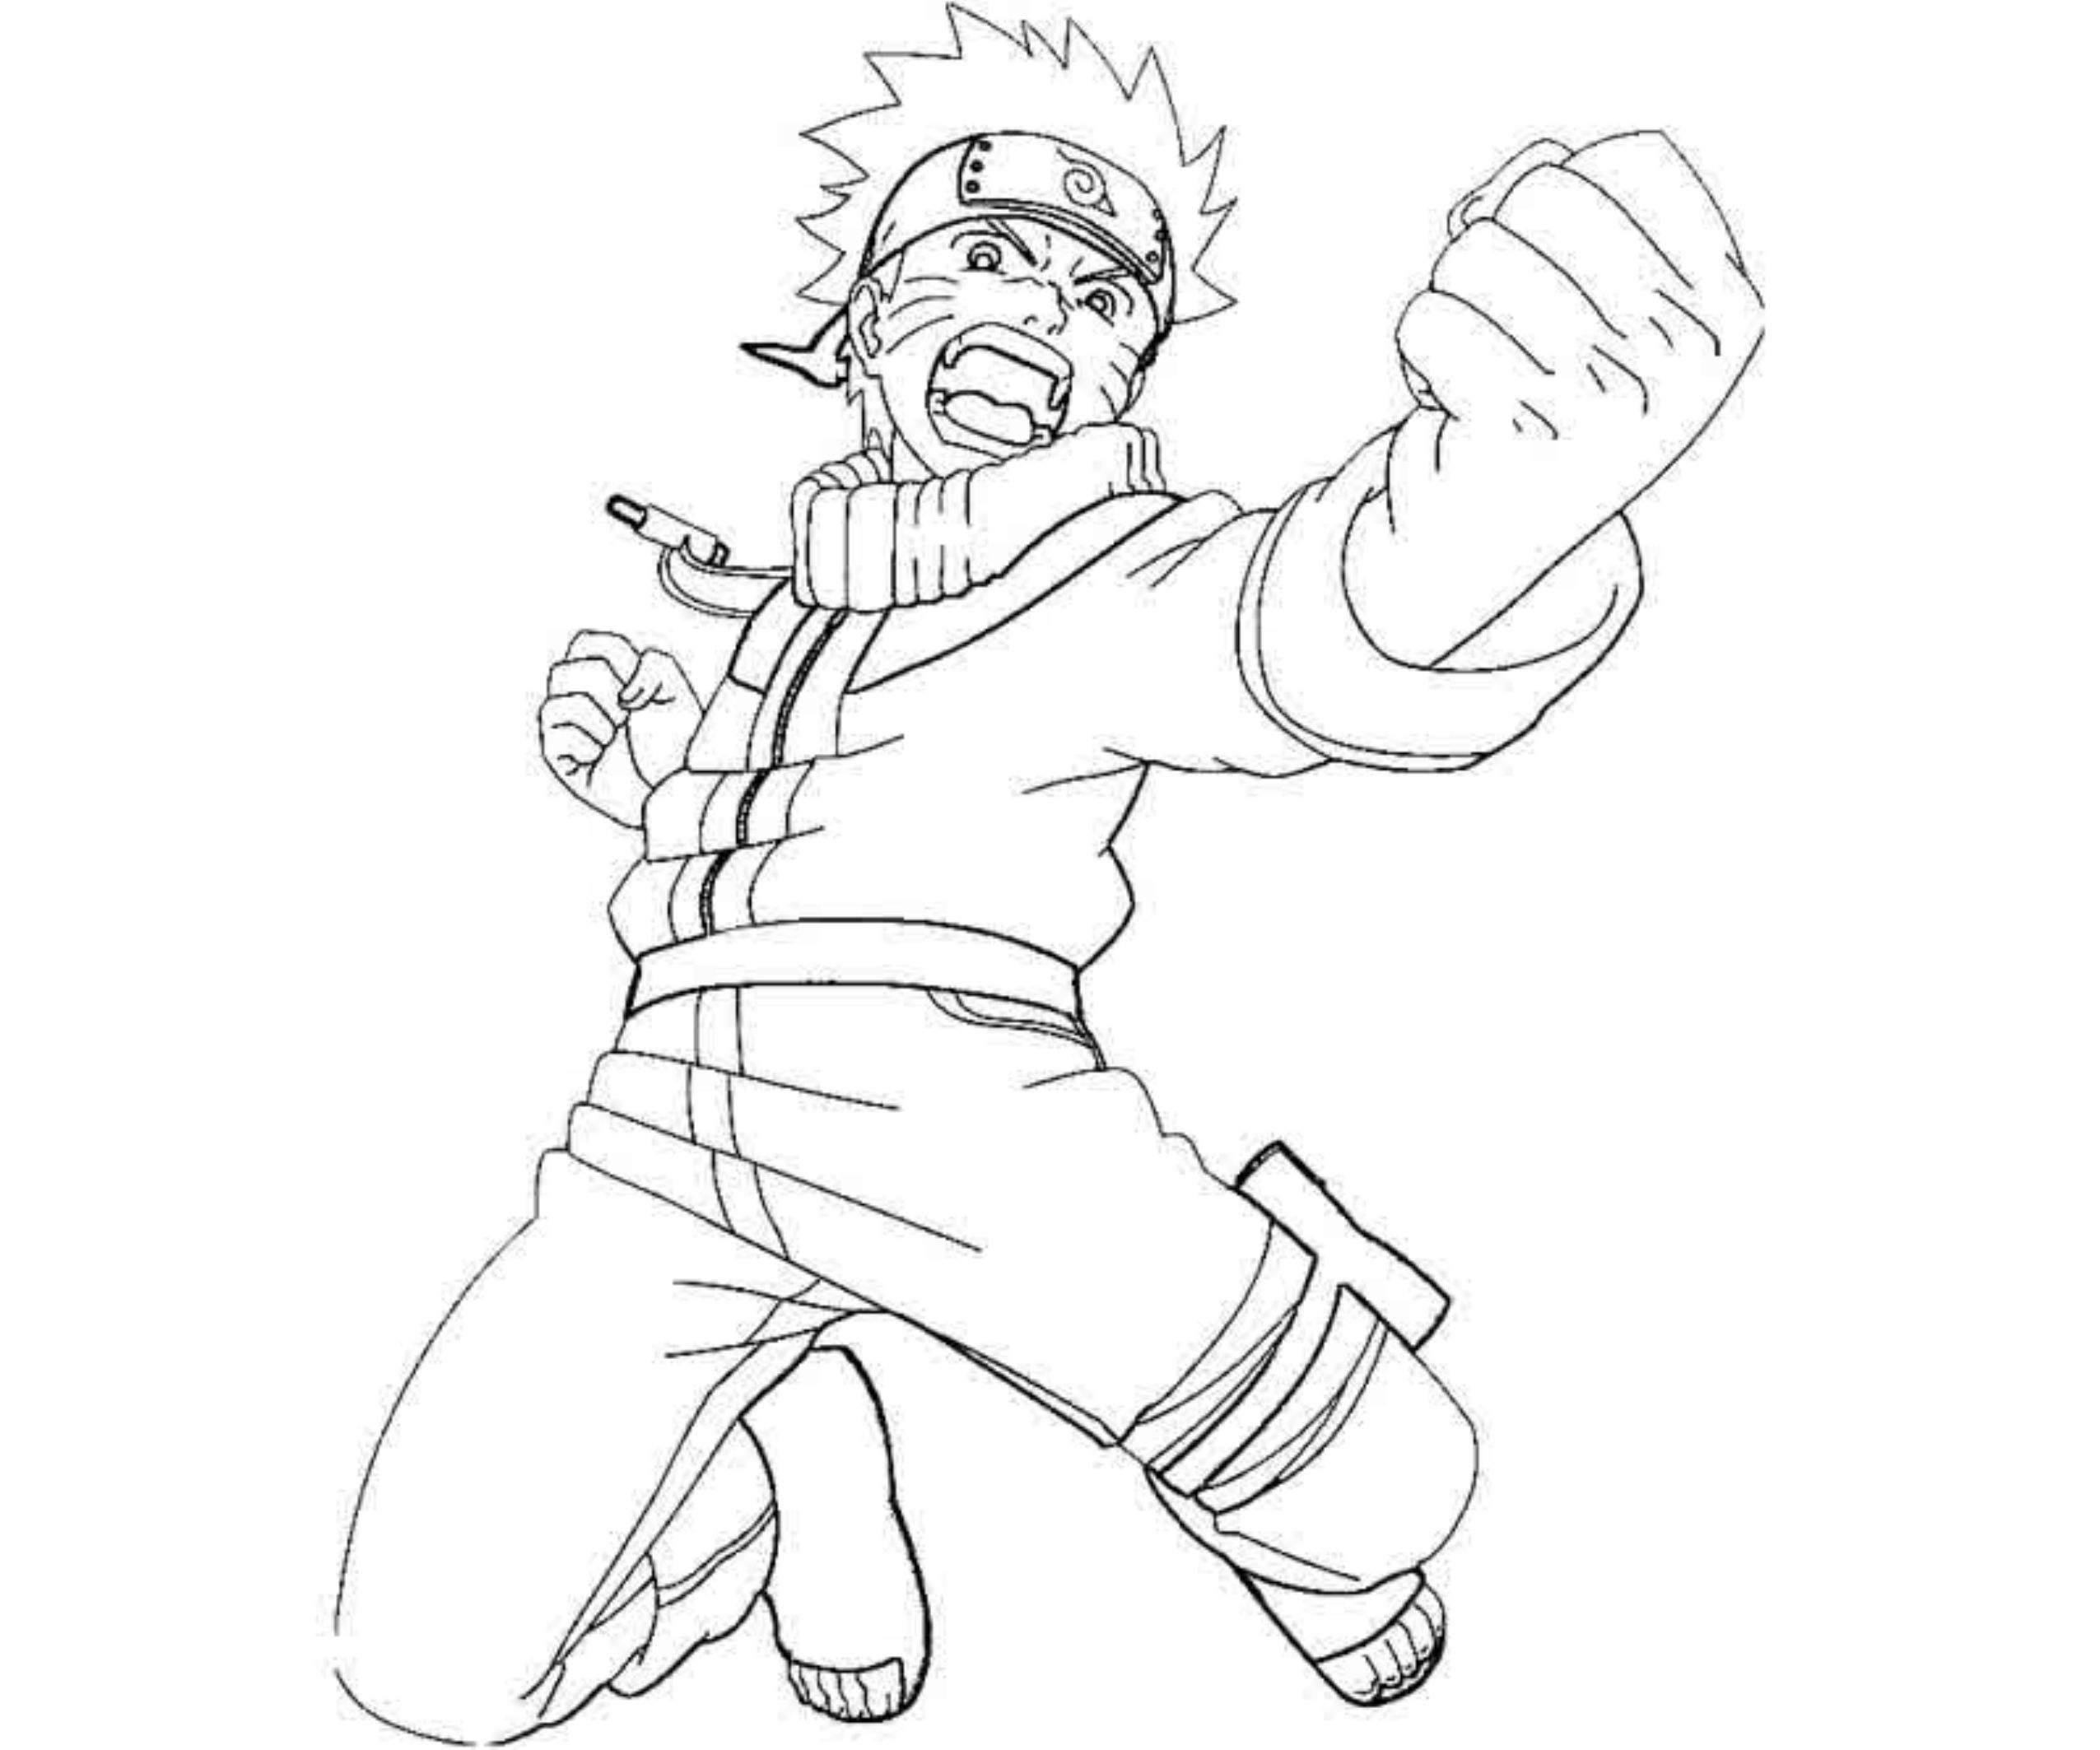 2551x2126 Sakura Haruno From Naruto Anime Coloring Pages For Kids Elegant